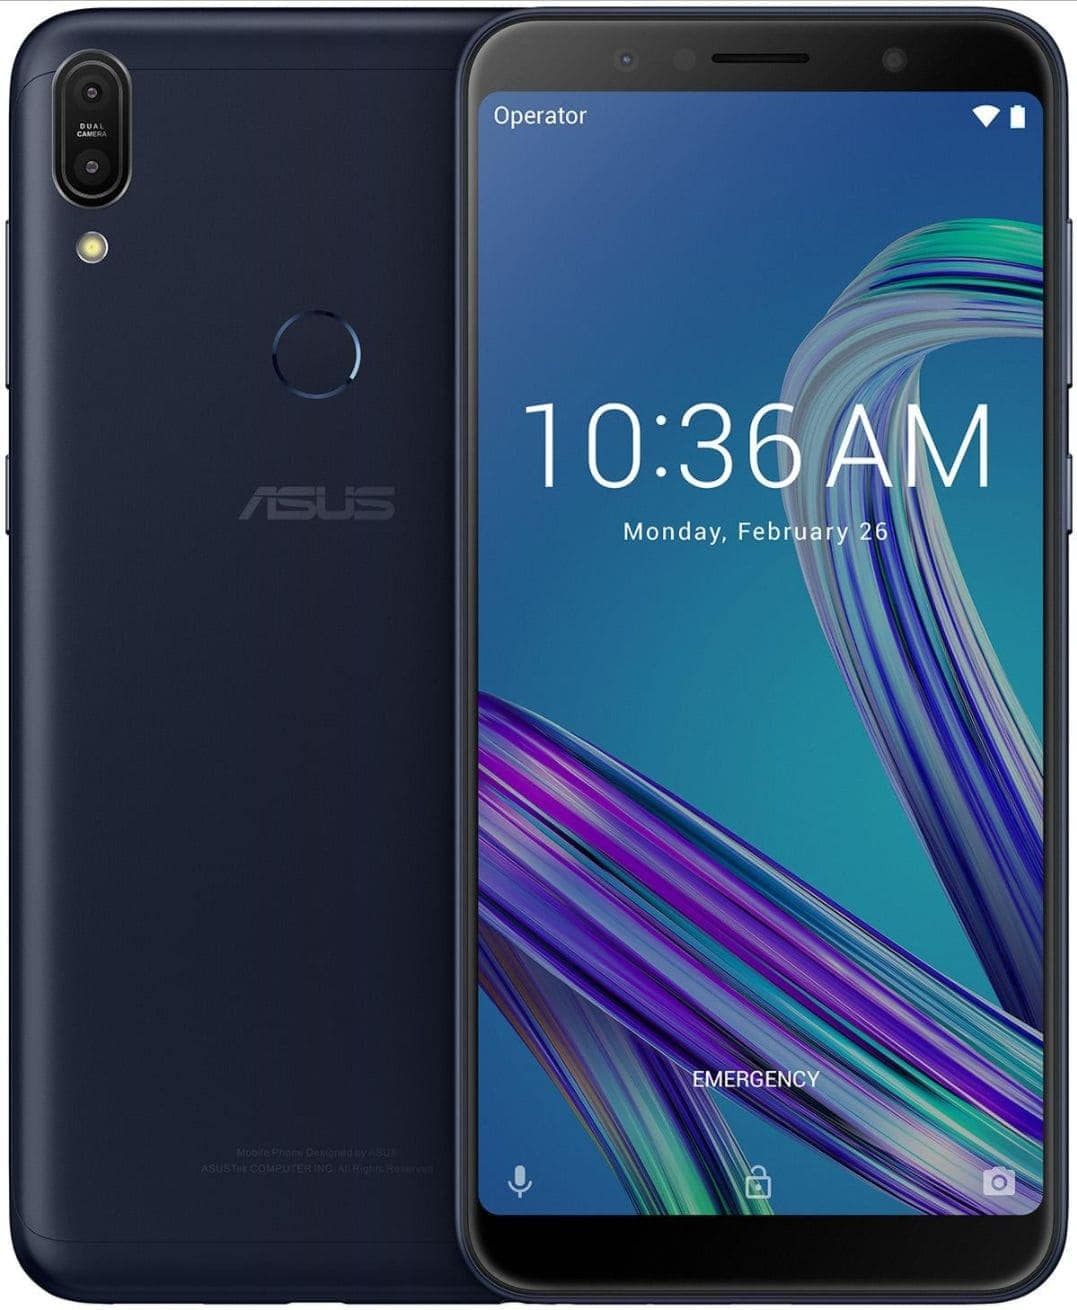 asus zenfone max pro m1 images leaked ahead of launch. Black Bedroom Furniture Sets. Home Design Ideas